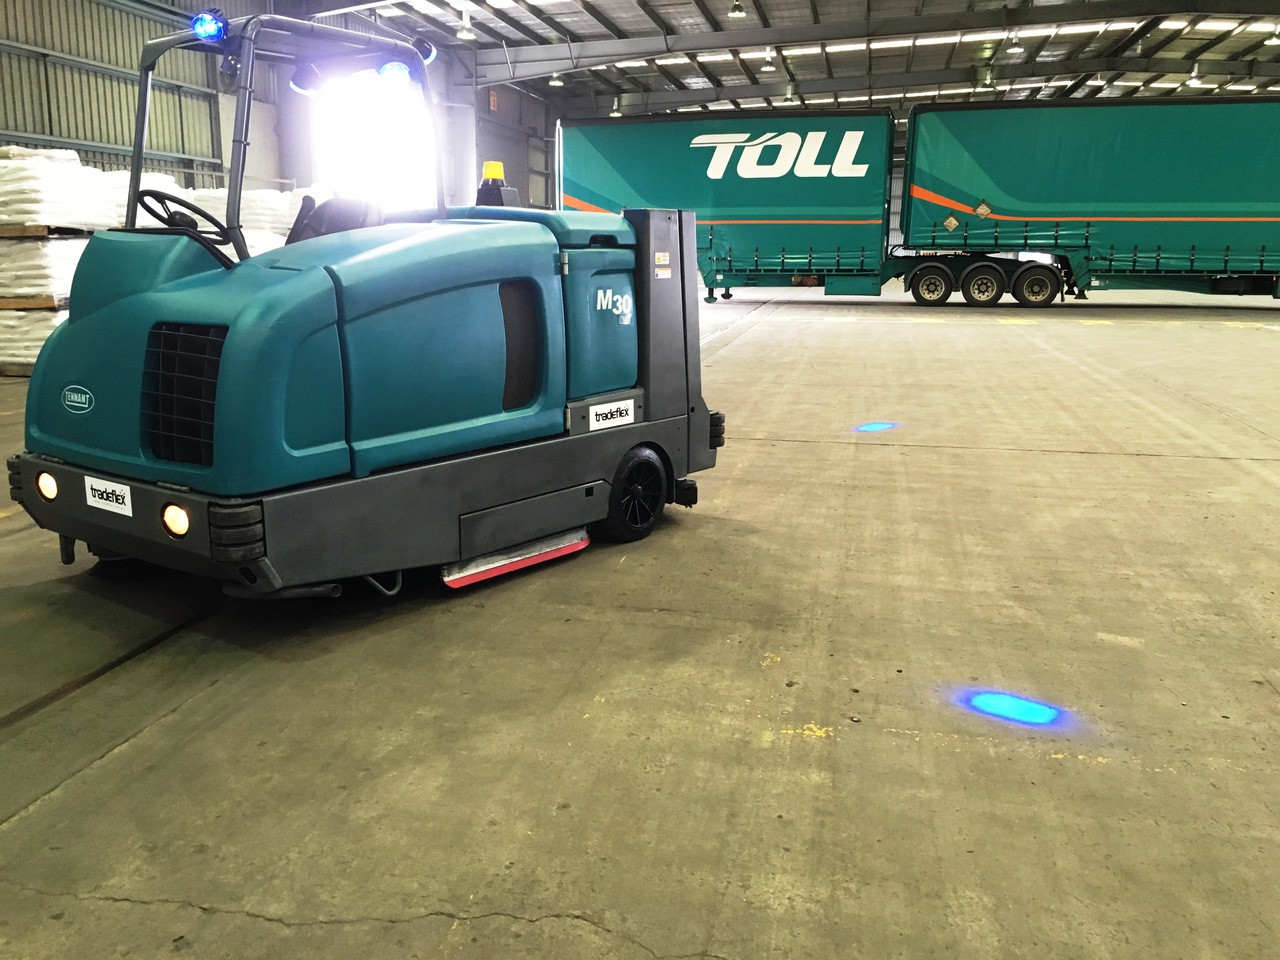 Our Blue Forklift Spot light can be used in many applications. Tradeflex supplied Toll with their warehouse sweepers and fitted our Blue Forklift Warning Light. Its visual and it works.